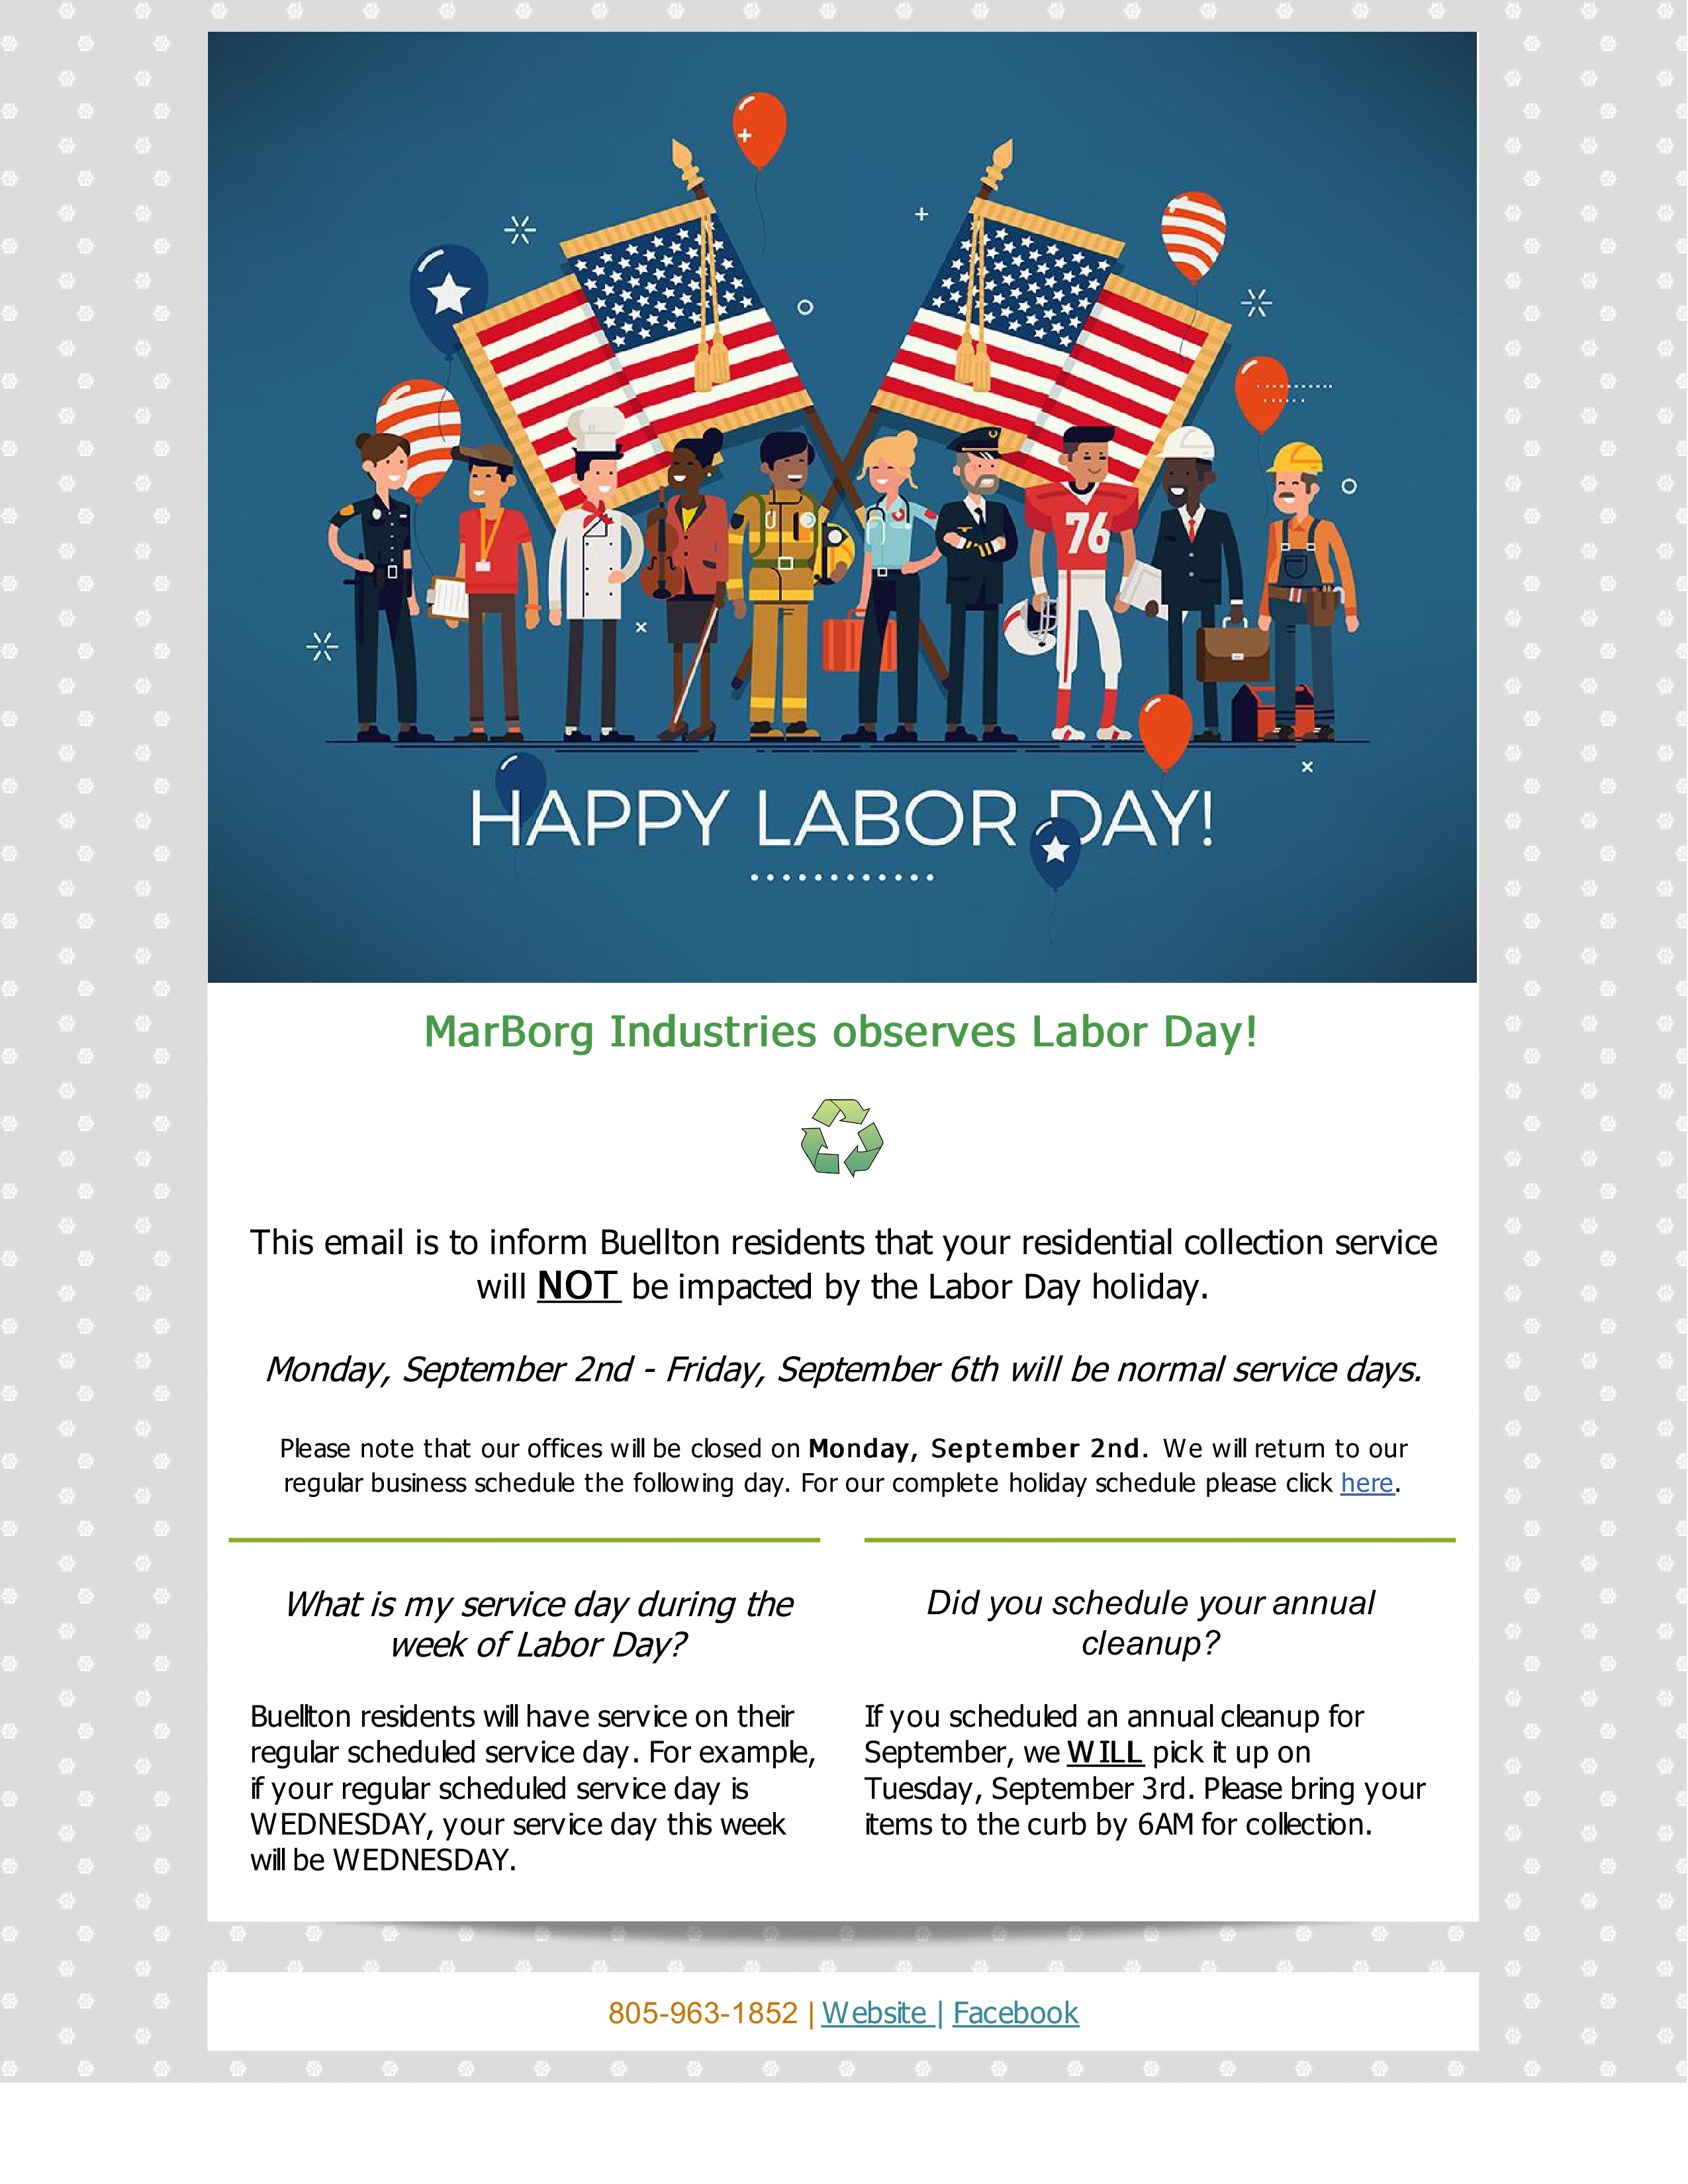 Marborg Industries Observes Labor Day